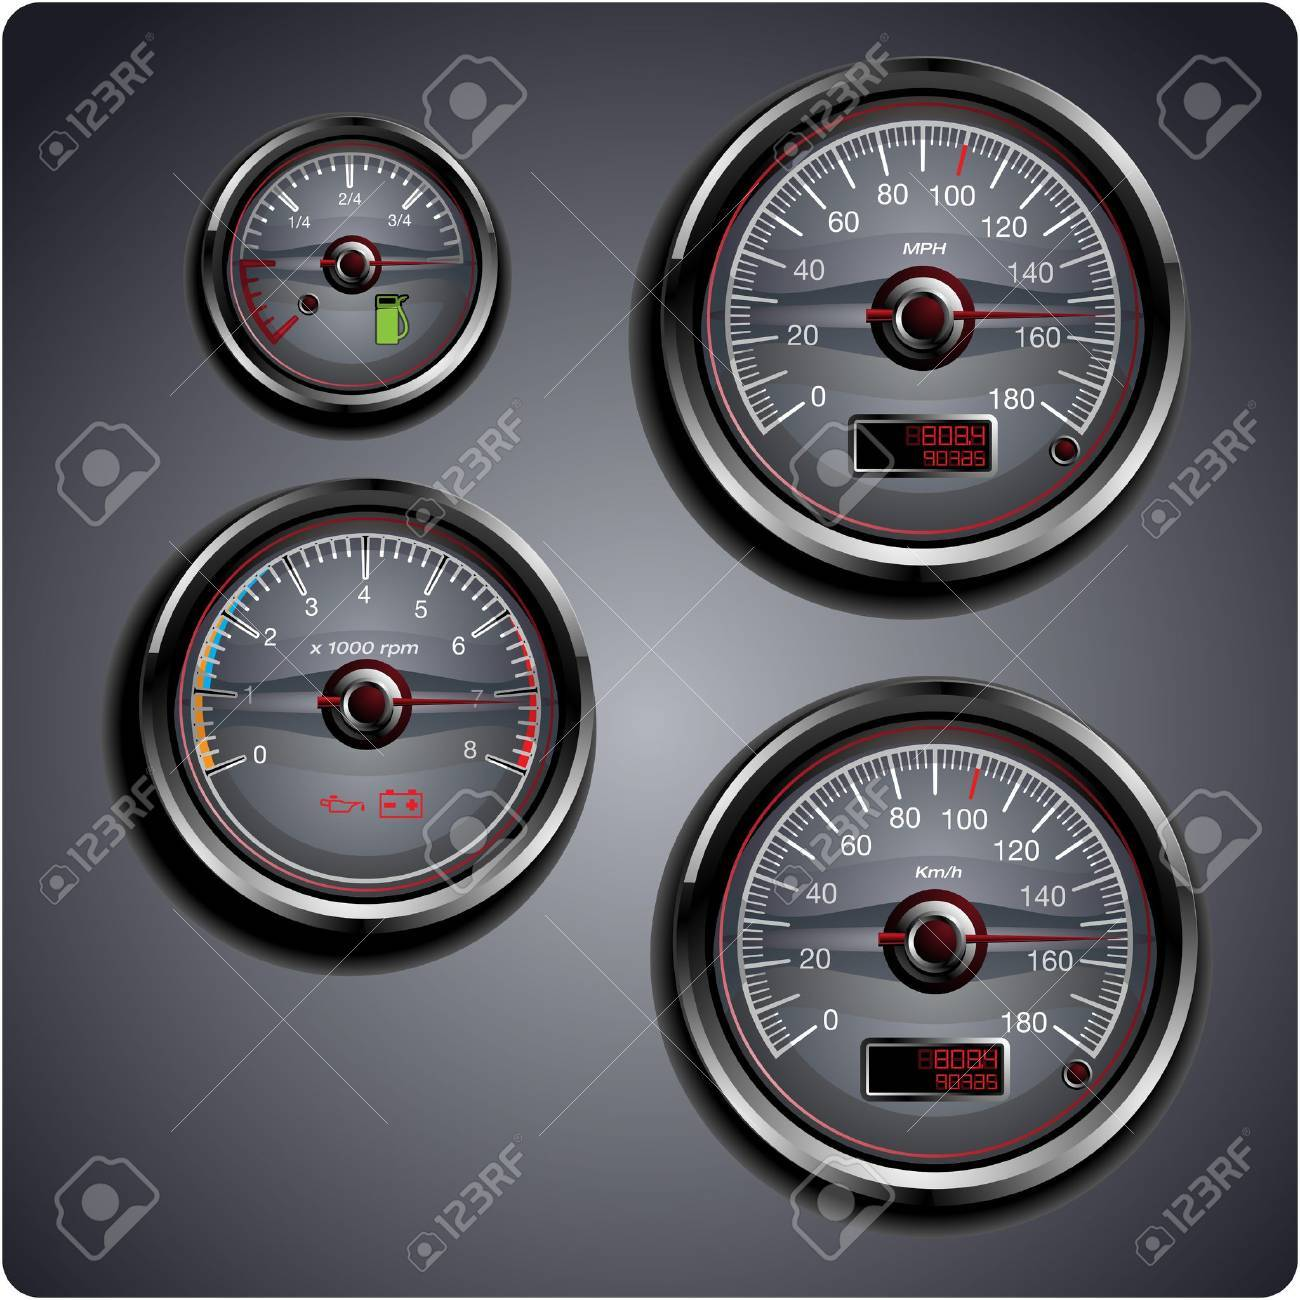 Illustrated automobile gauges for gas, oil, battery and speed. Stock Vector - 10445386